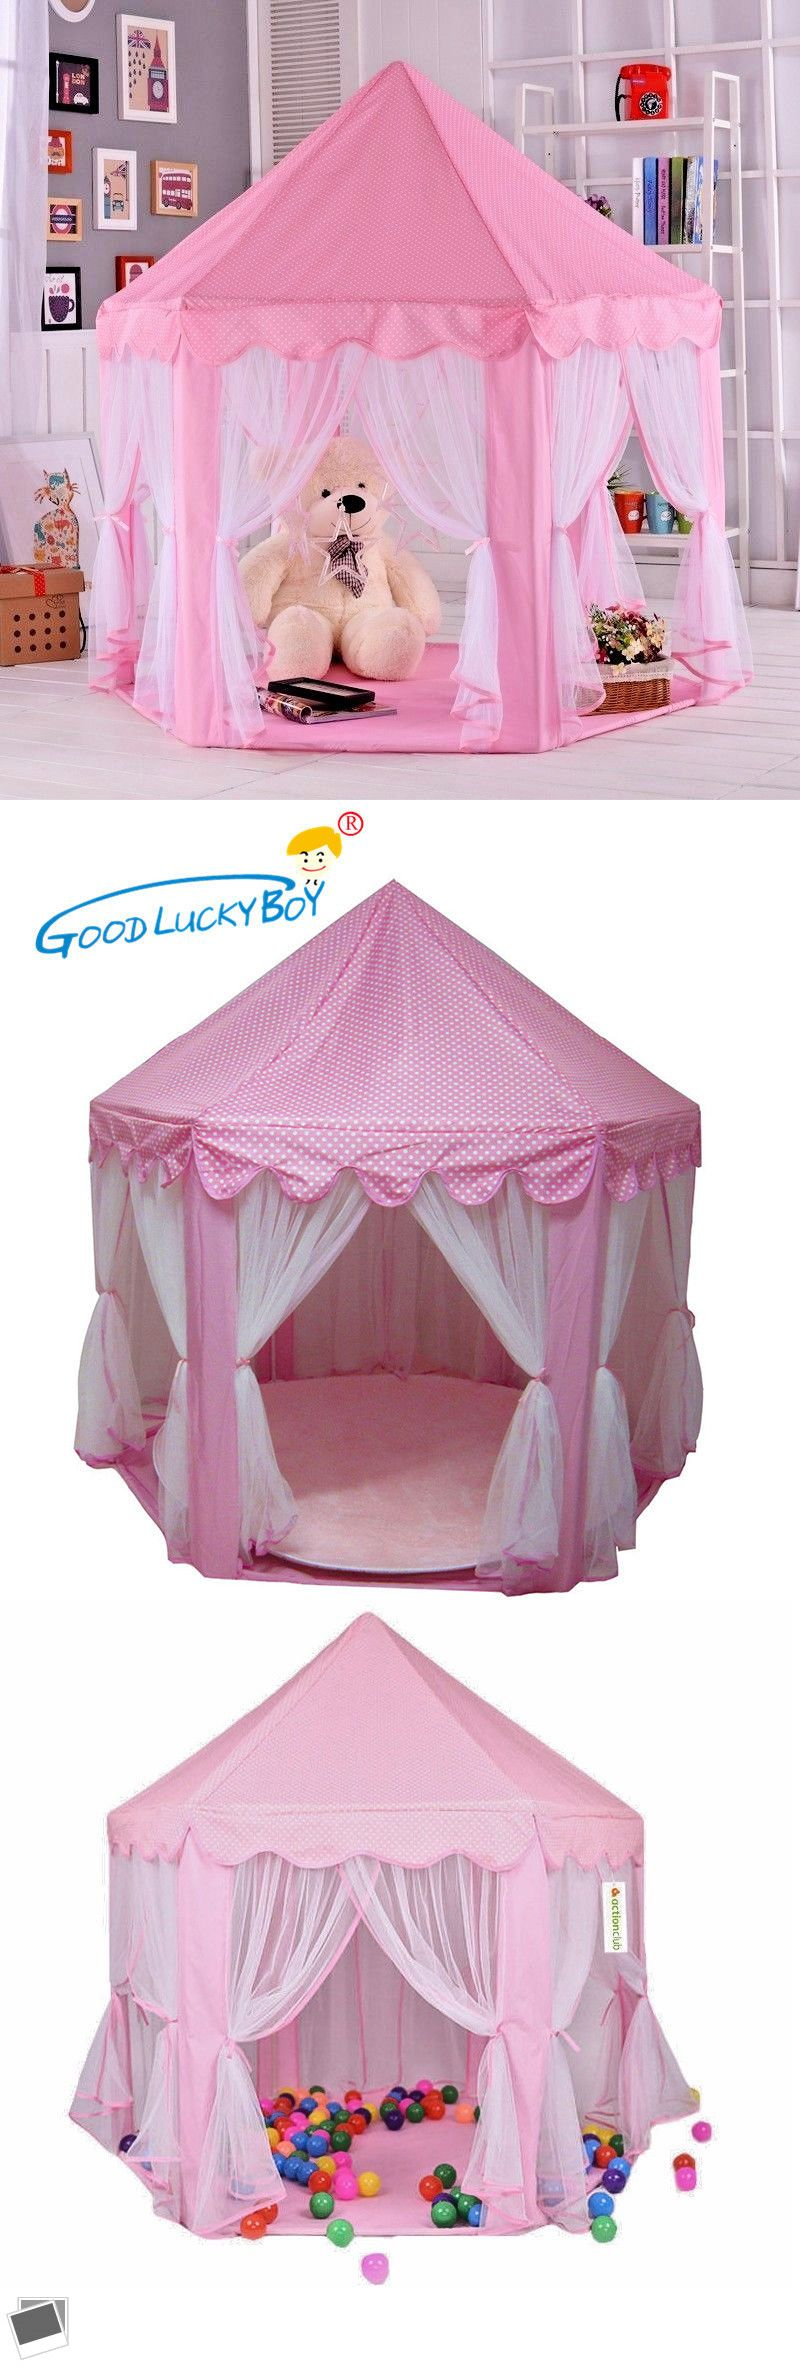 Play Tents 145997 Toys Hobbies Outdoor Toys Structures Tents Tunnels Playhuts Play Tents -u003e & Play Tents 145997: Toys Hobbies Outdoor Toys Structures Tents ...